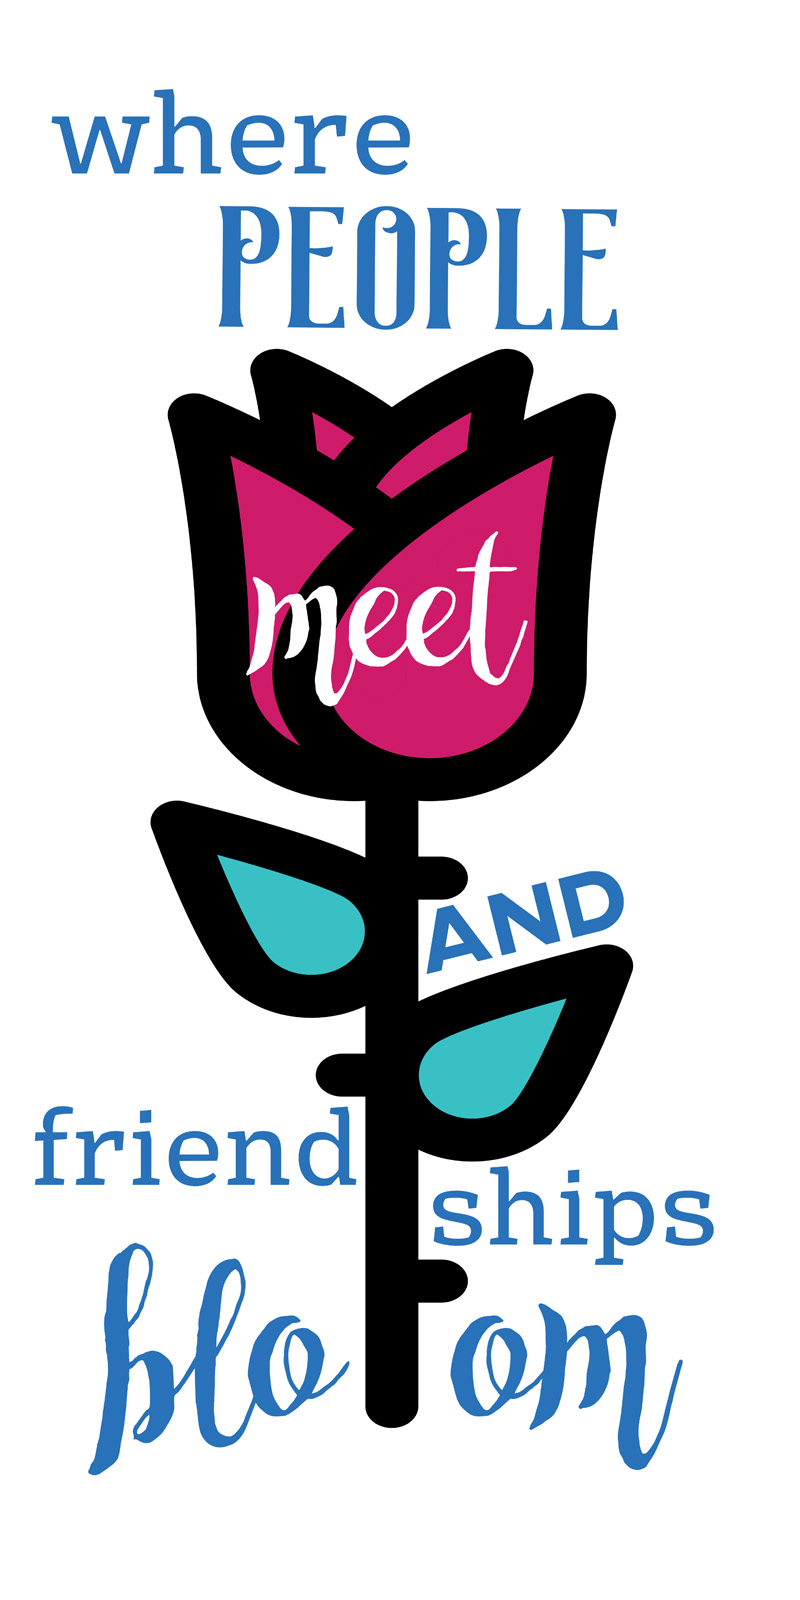 Where people meet and friendships bloom.